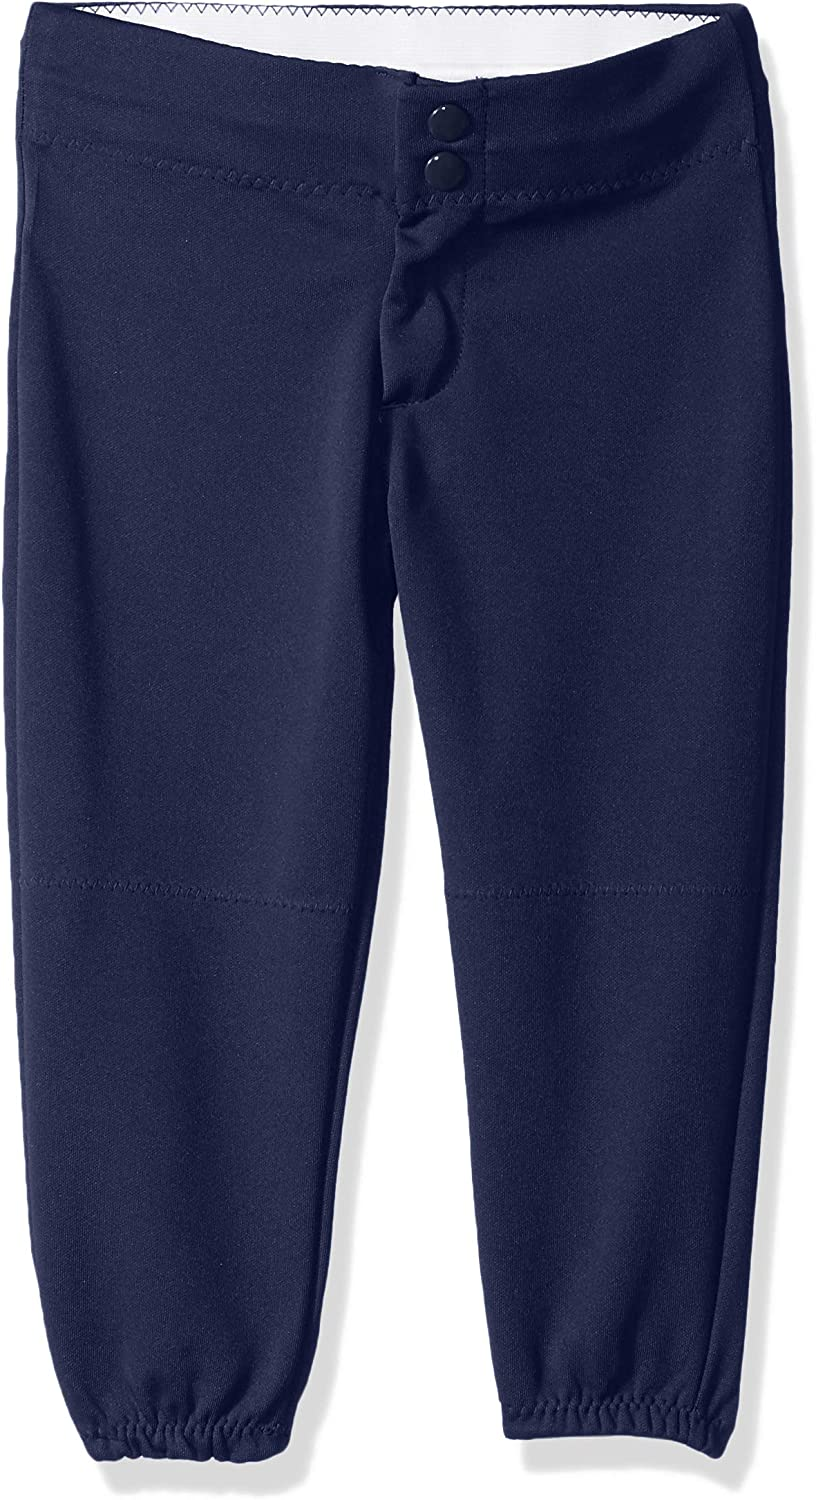 Under blast sales Alleson Athletic Industry No. 1 Sports Equipment Girls Softball Fastpitch Pants